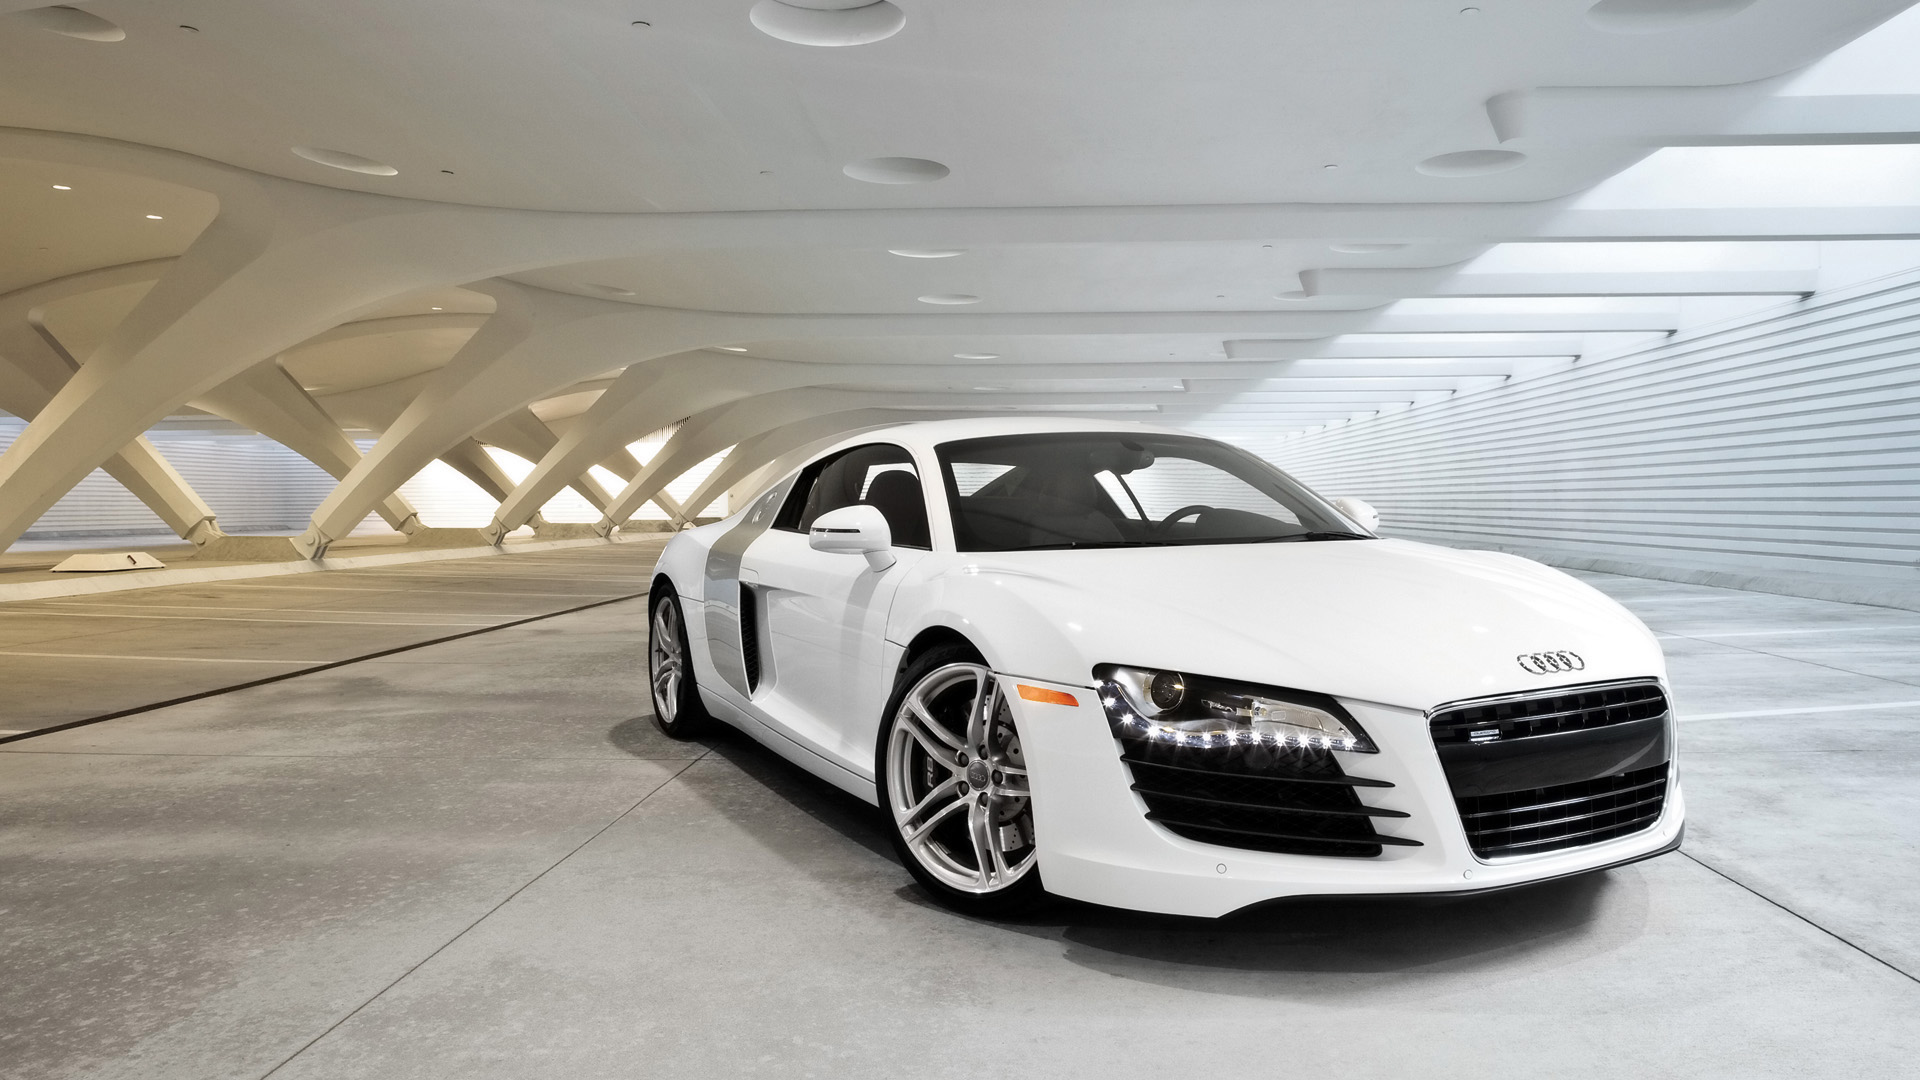 White Audi R8 Wallpaper HD Download